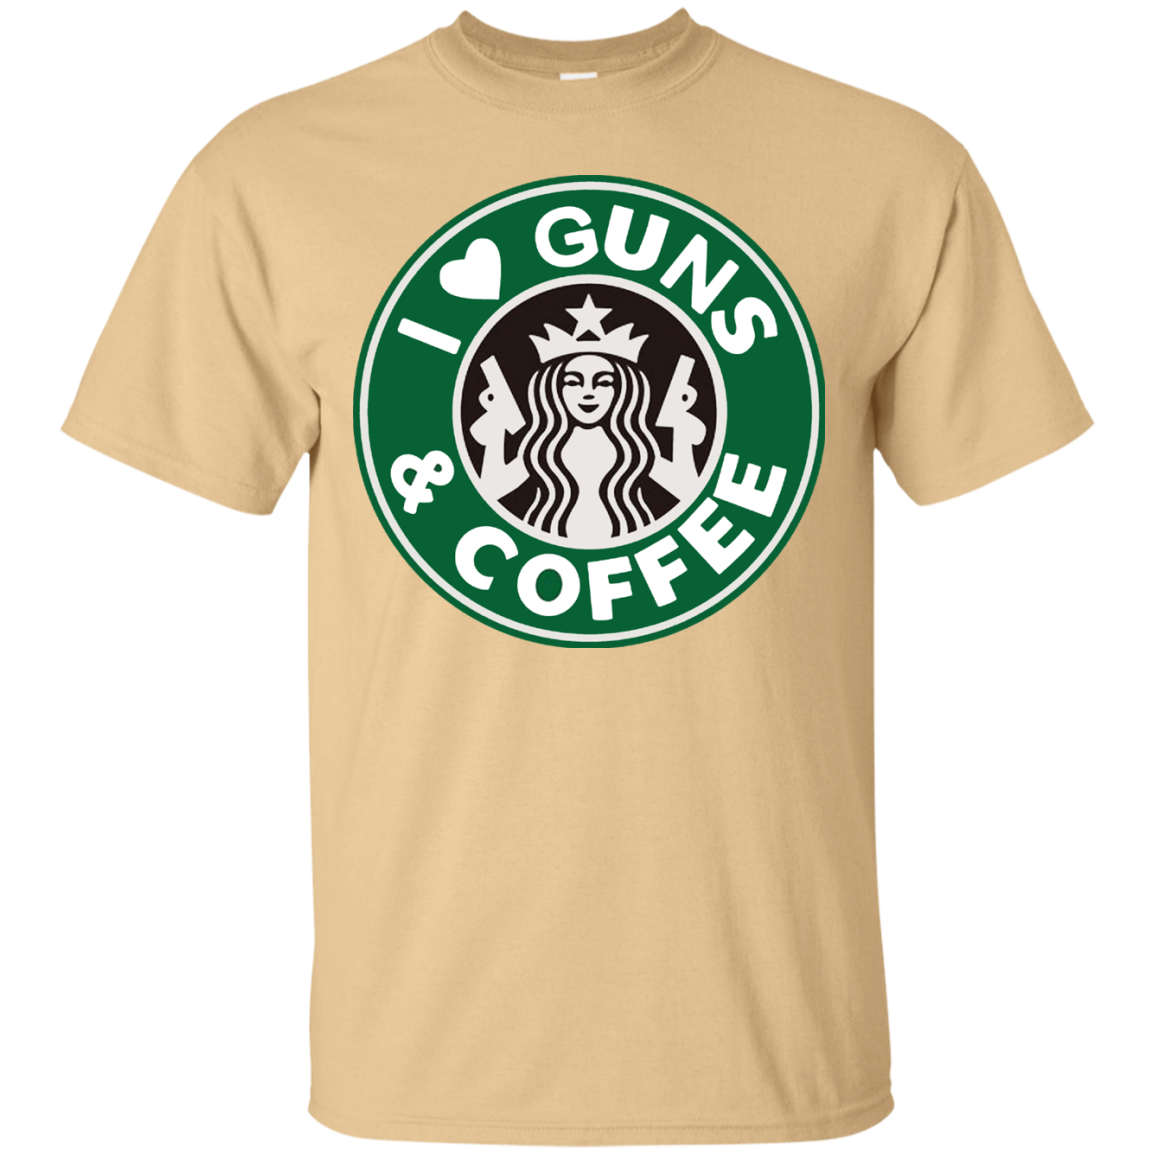 I Love Guns and Coffee T Shirt - T-Shirt